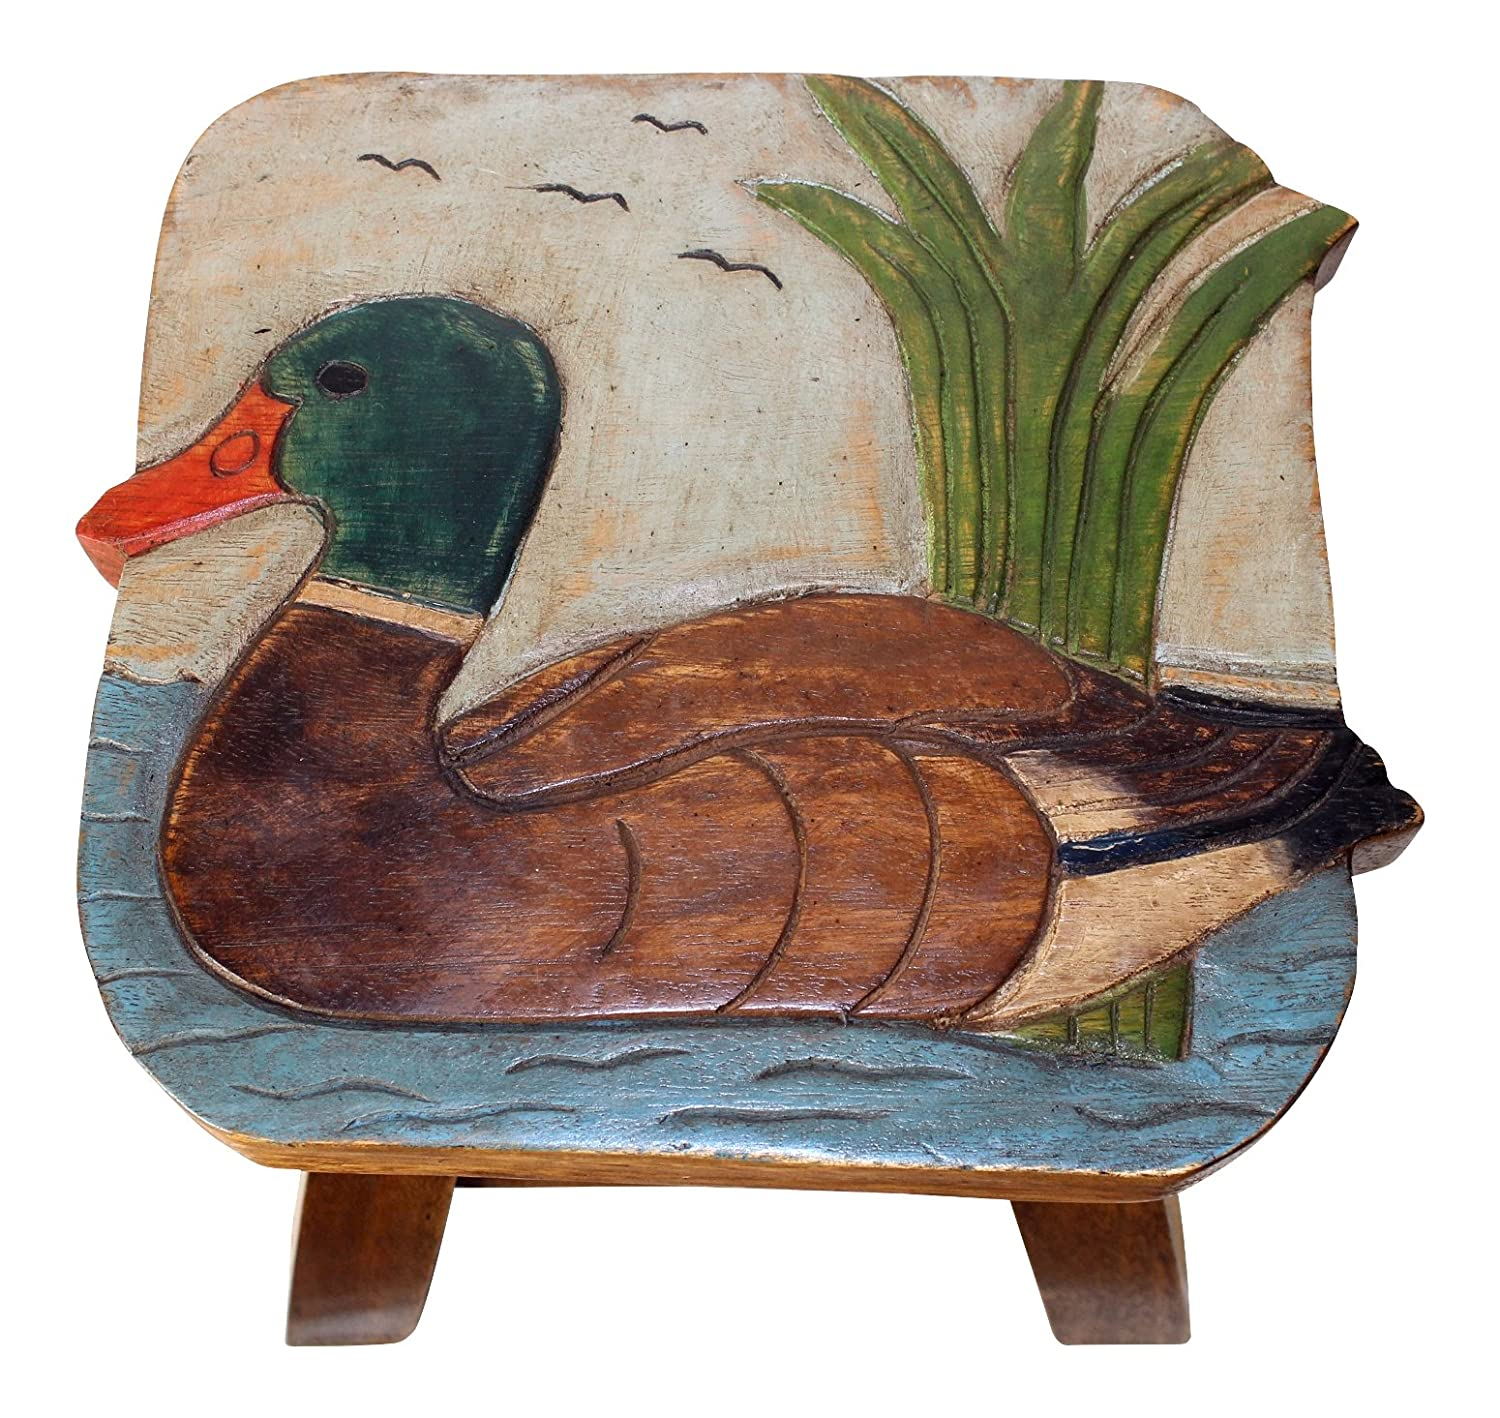 Amazon.com Mallard Duck Hand Carved and Hand Painted Wooden Foot Stool Kitchen u0026 Dining  sc 1 st  Amazon.com & Amazon.com: Mallard Duck Hand Carved and Hand Painted Wooden Foot ... islam-shia.org